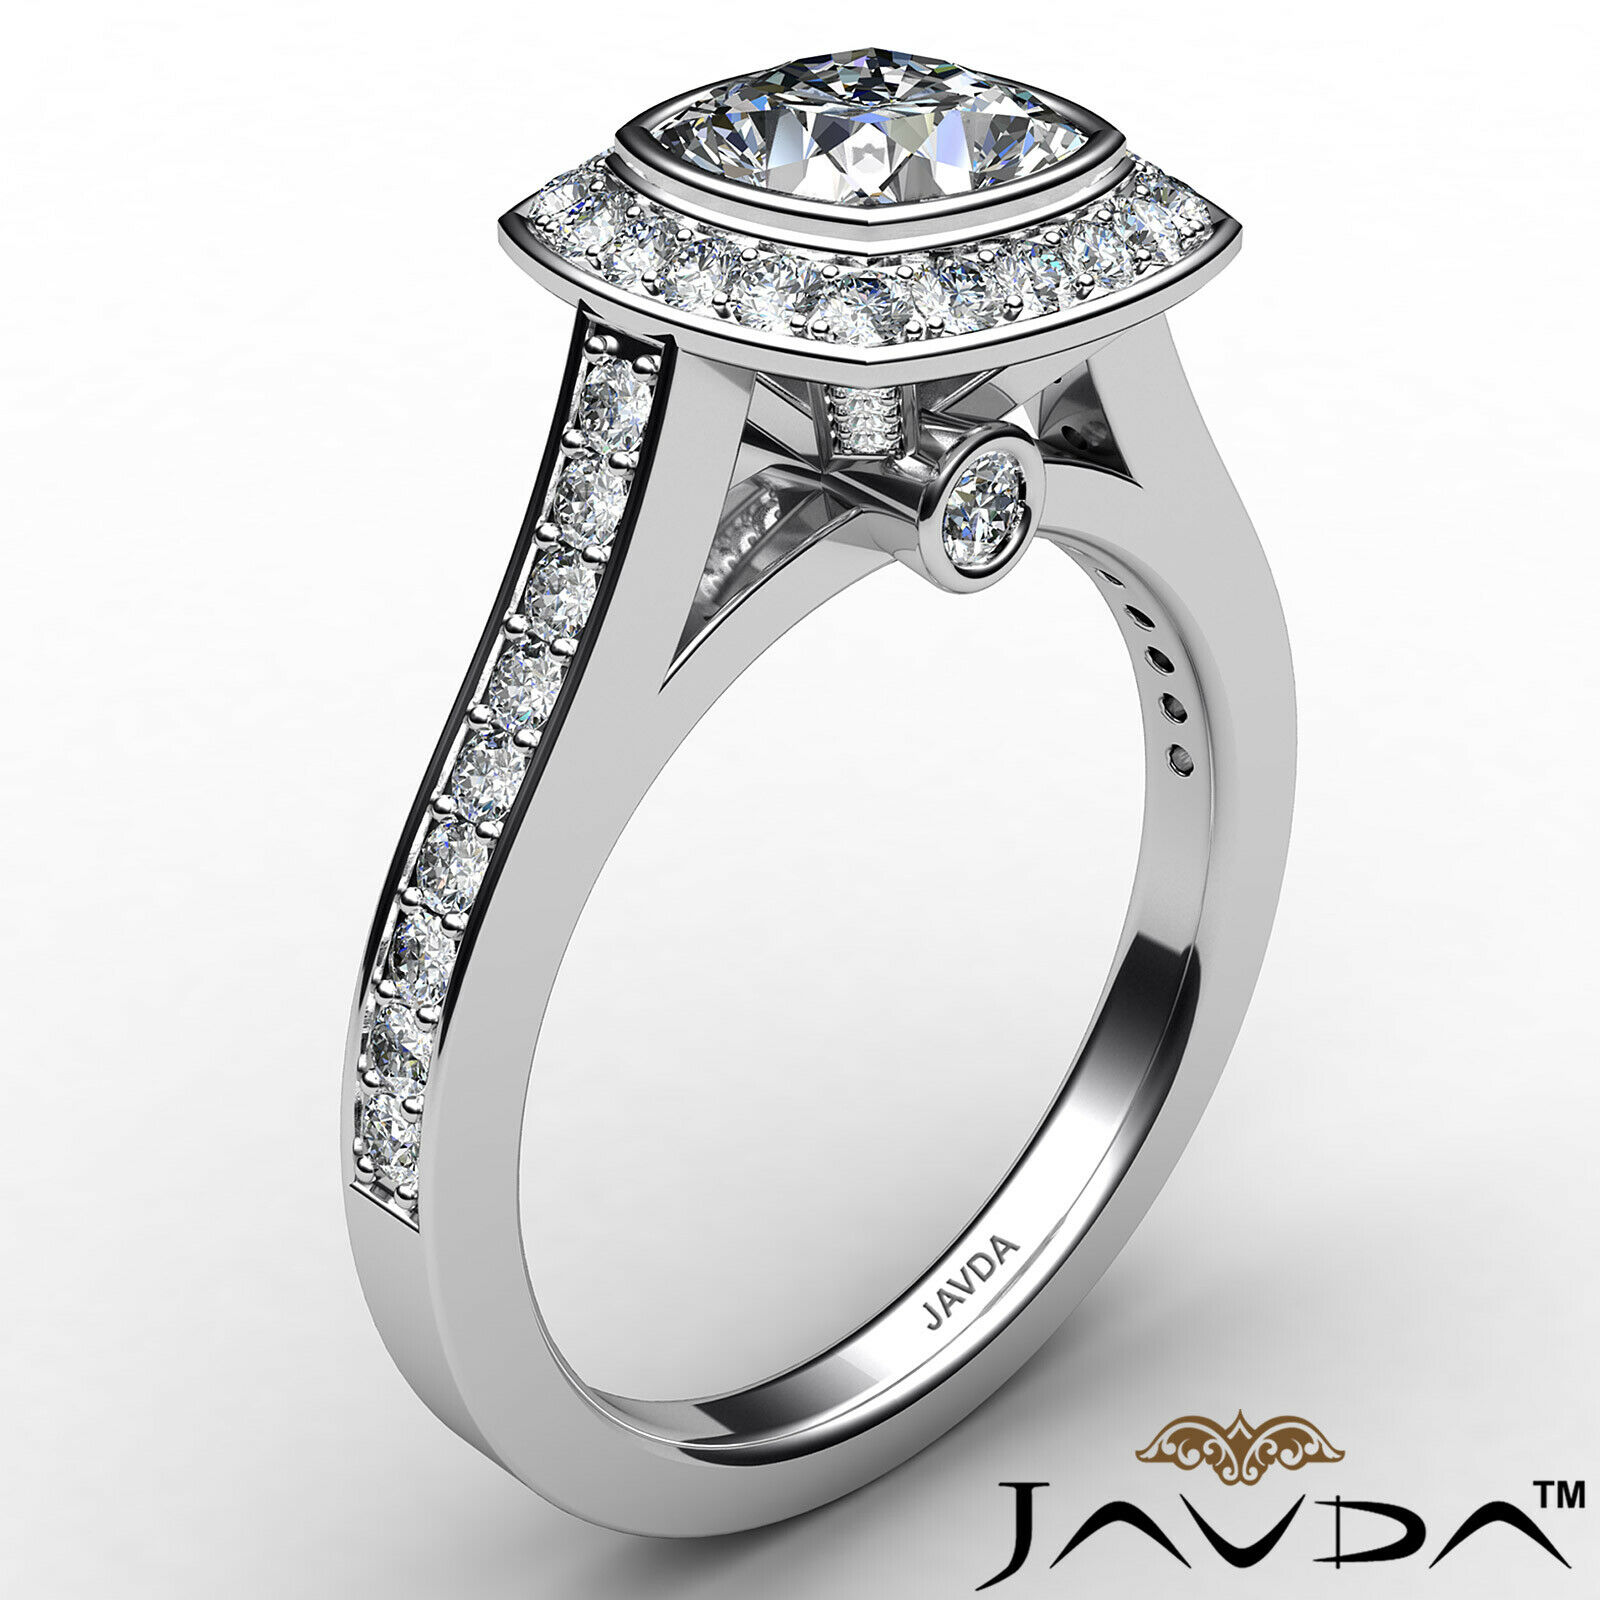 Micro Halo Cushion Diamond Engagement Ring GIA H Color & VS1 clarity 1.4 ctw 3